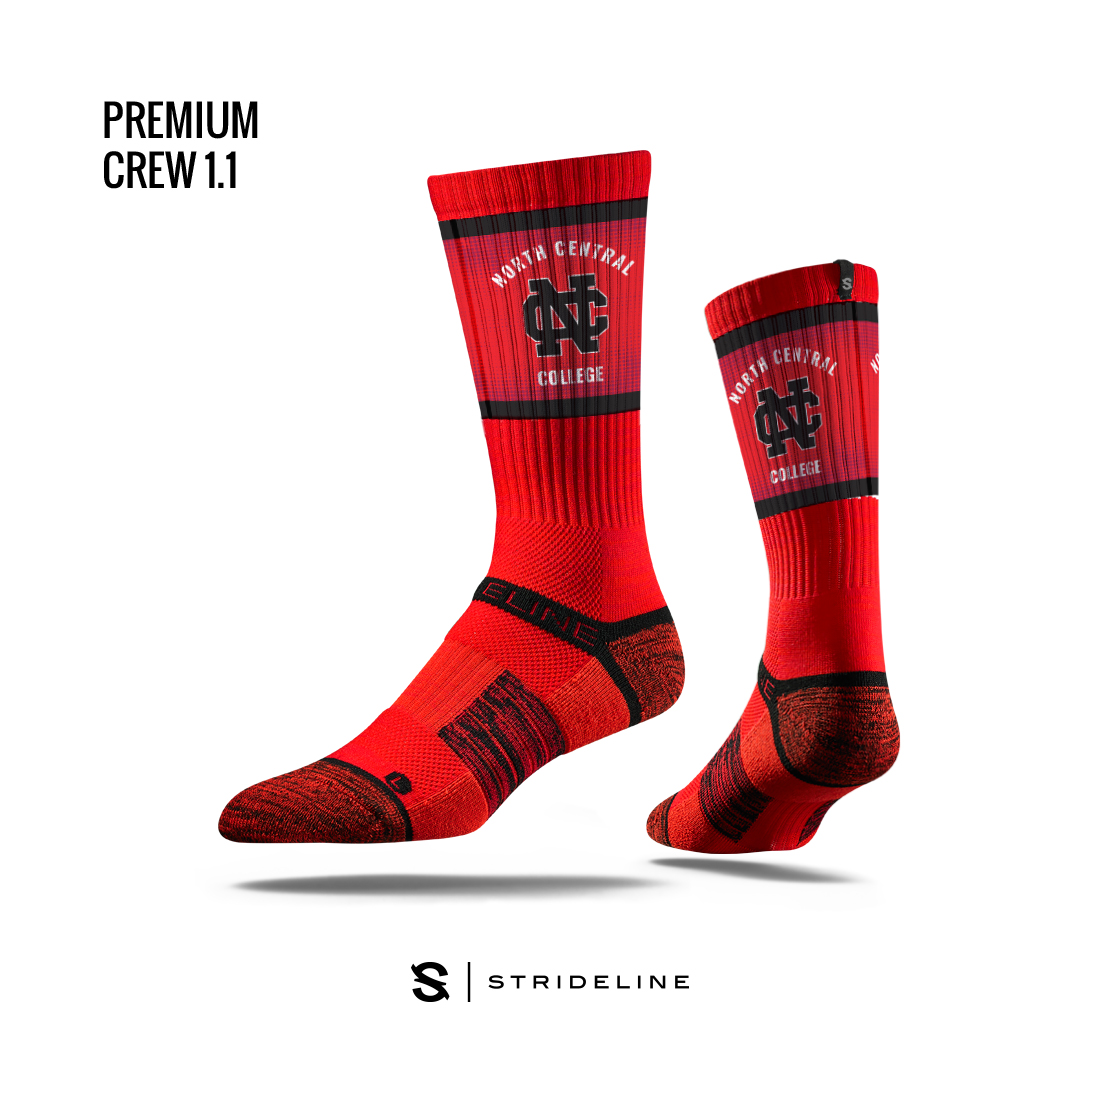 Image for the Strideline Red Crew Socks product